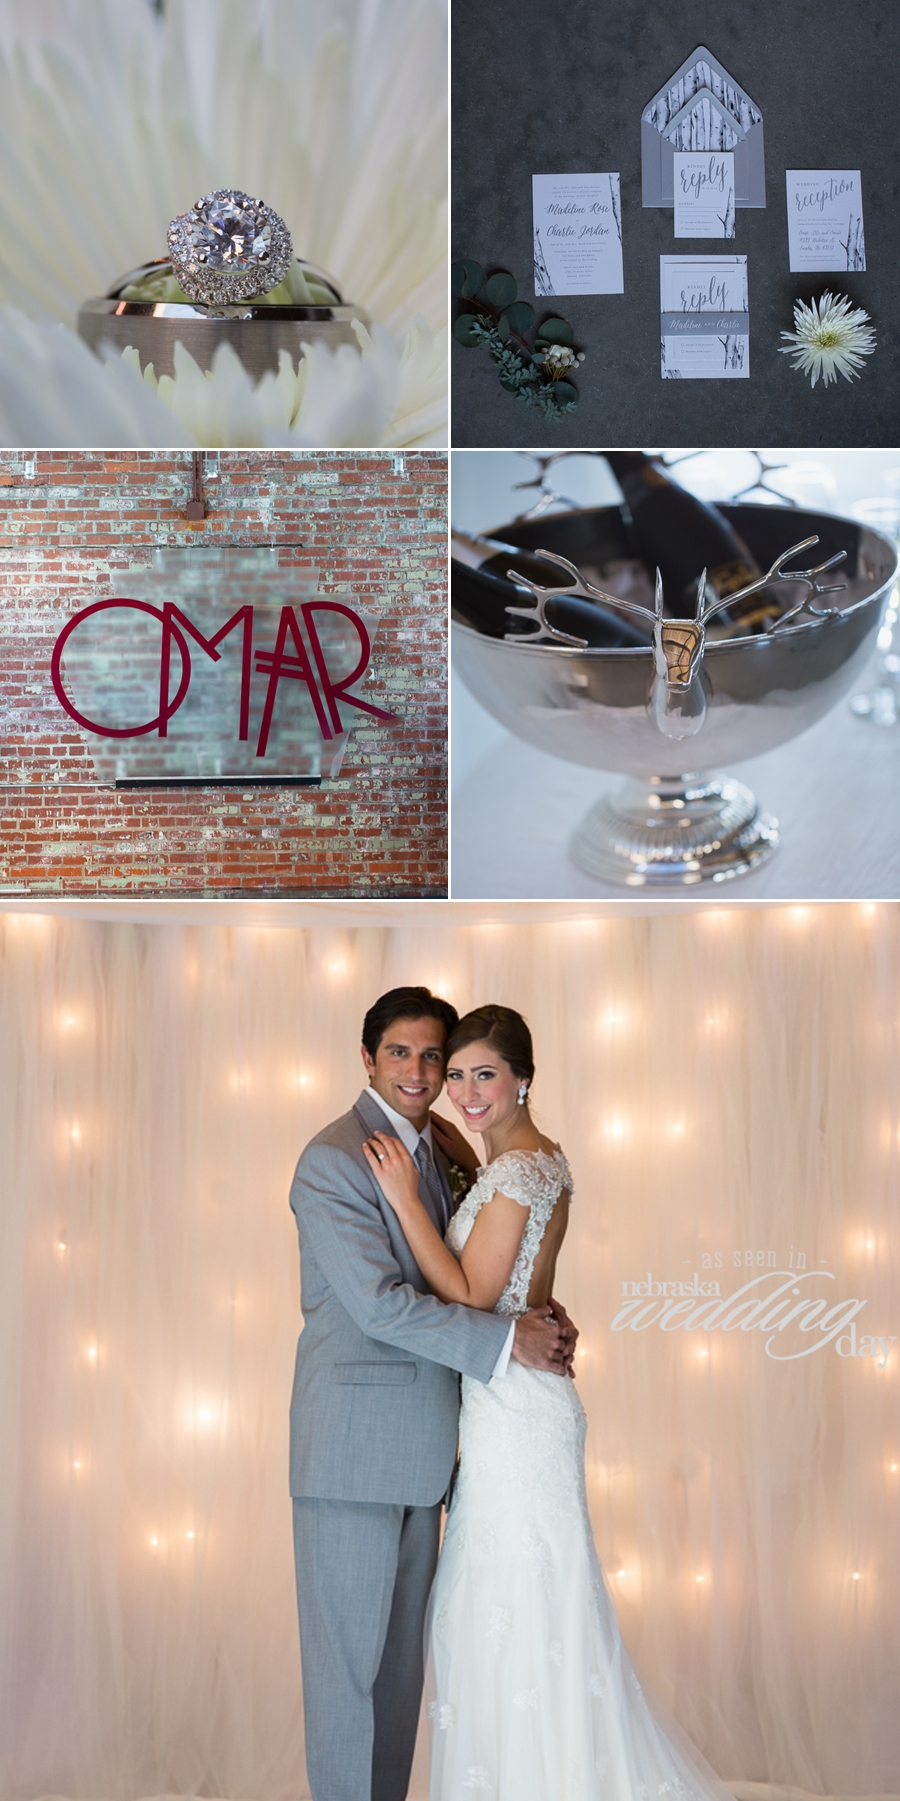 Photoshoot at the Omar building wedding reception center